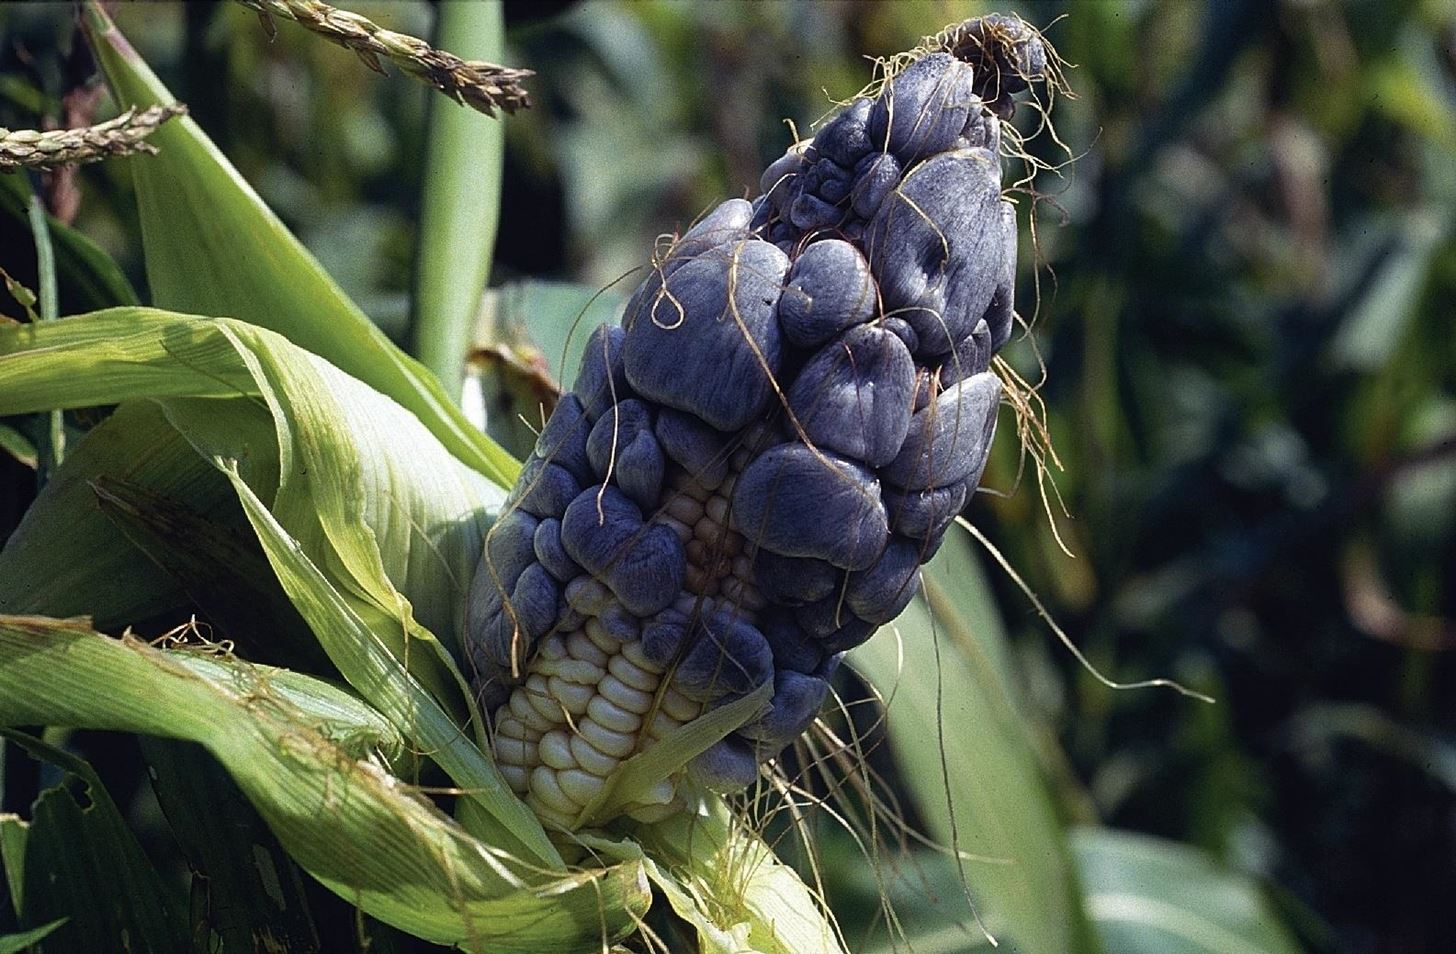 Weird Ingredient Wednesday: Huitlacoche, the Disease You Want to Eat